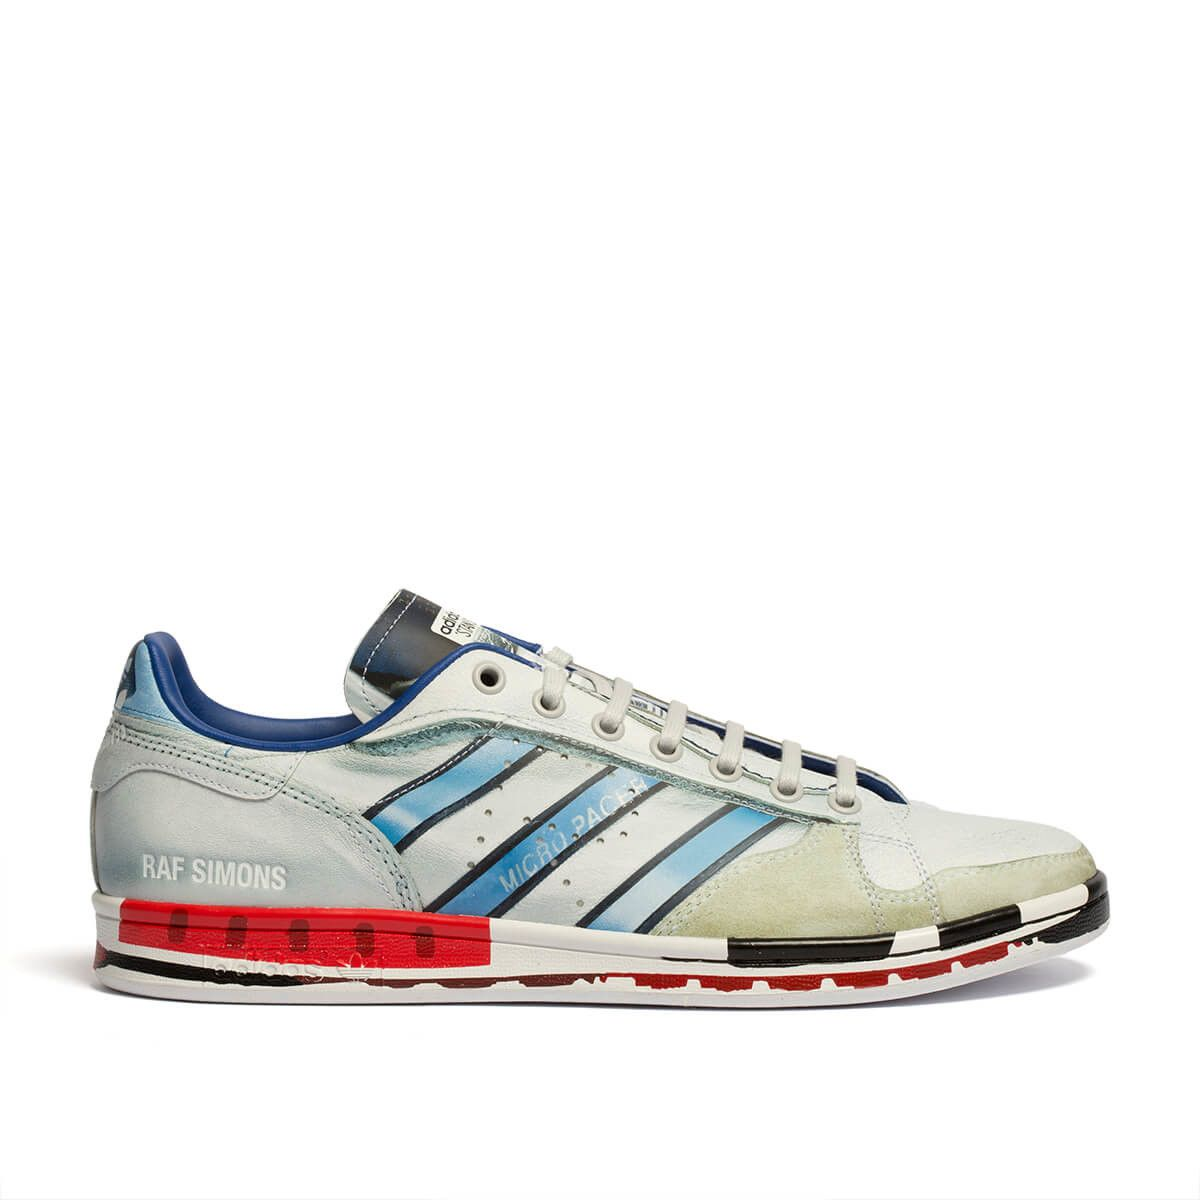 6d785cb35 Micro Stan sneakers from the S S2019 Raf Simons x Adidas collection in  multicolor